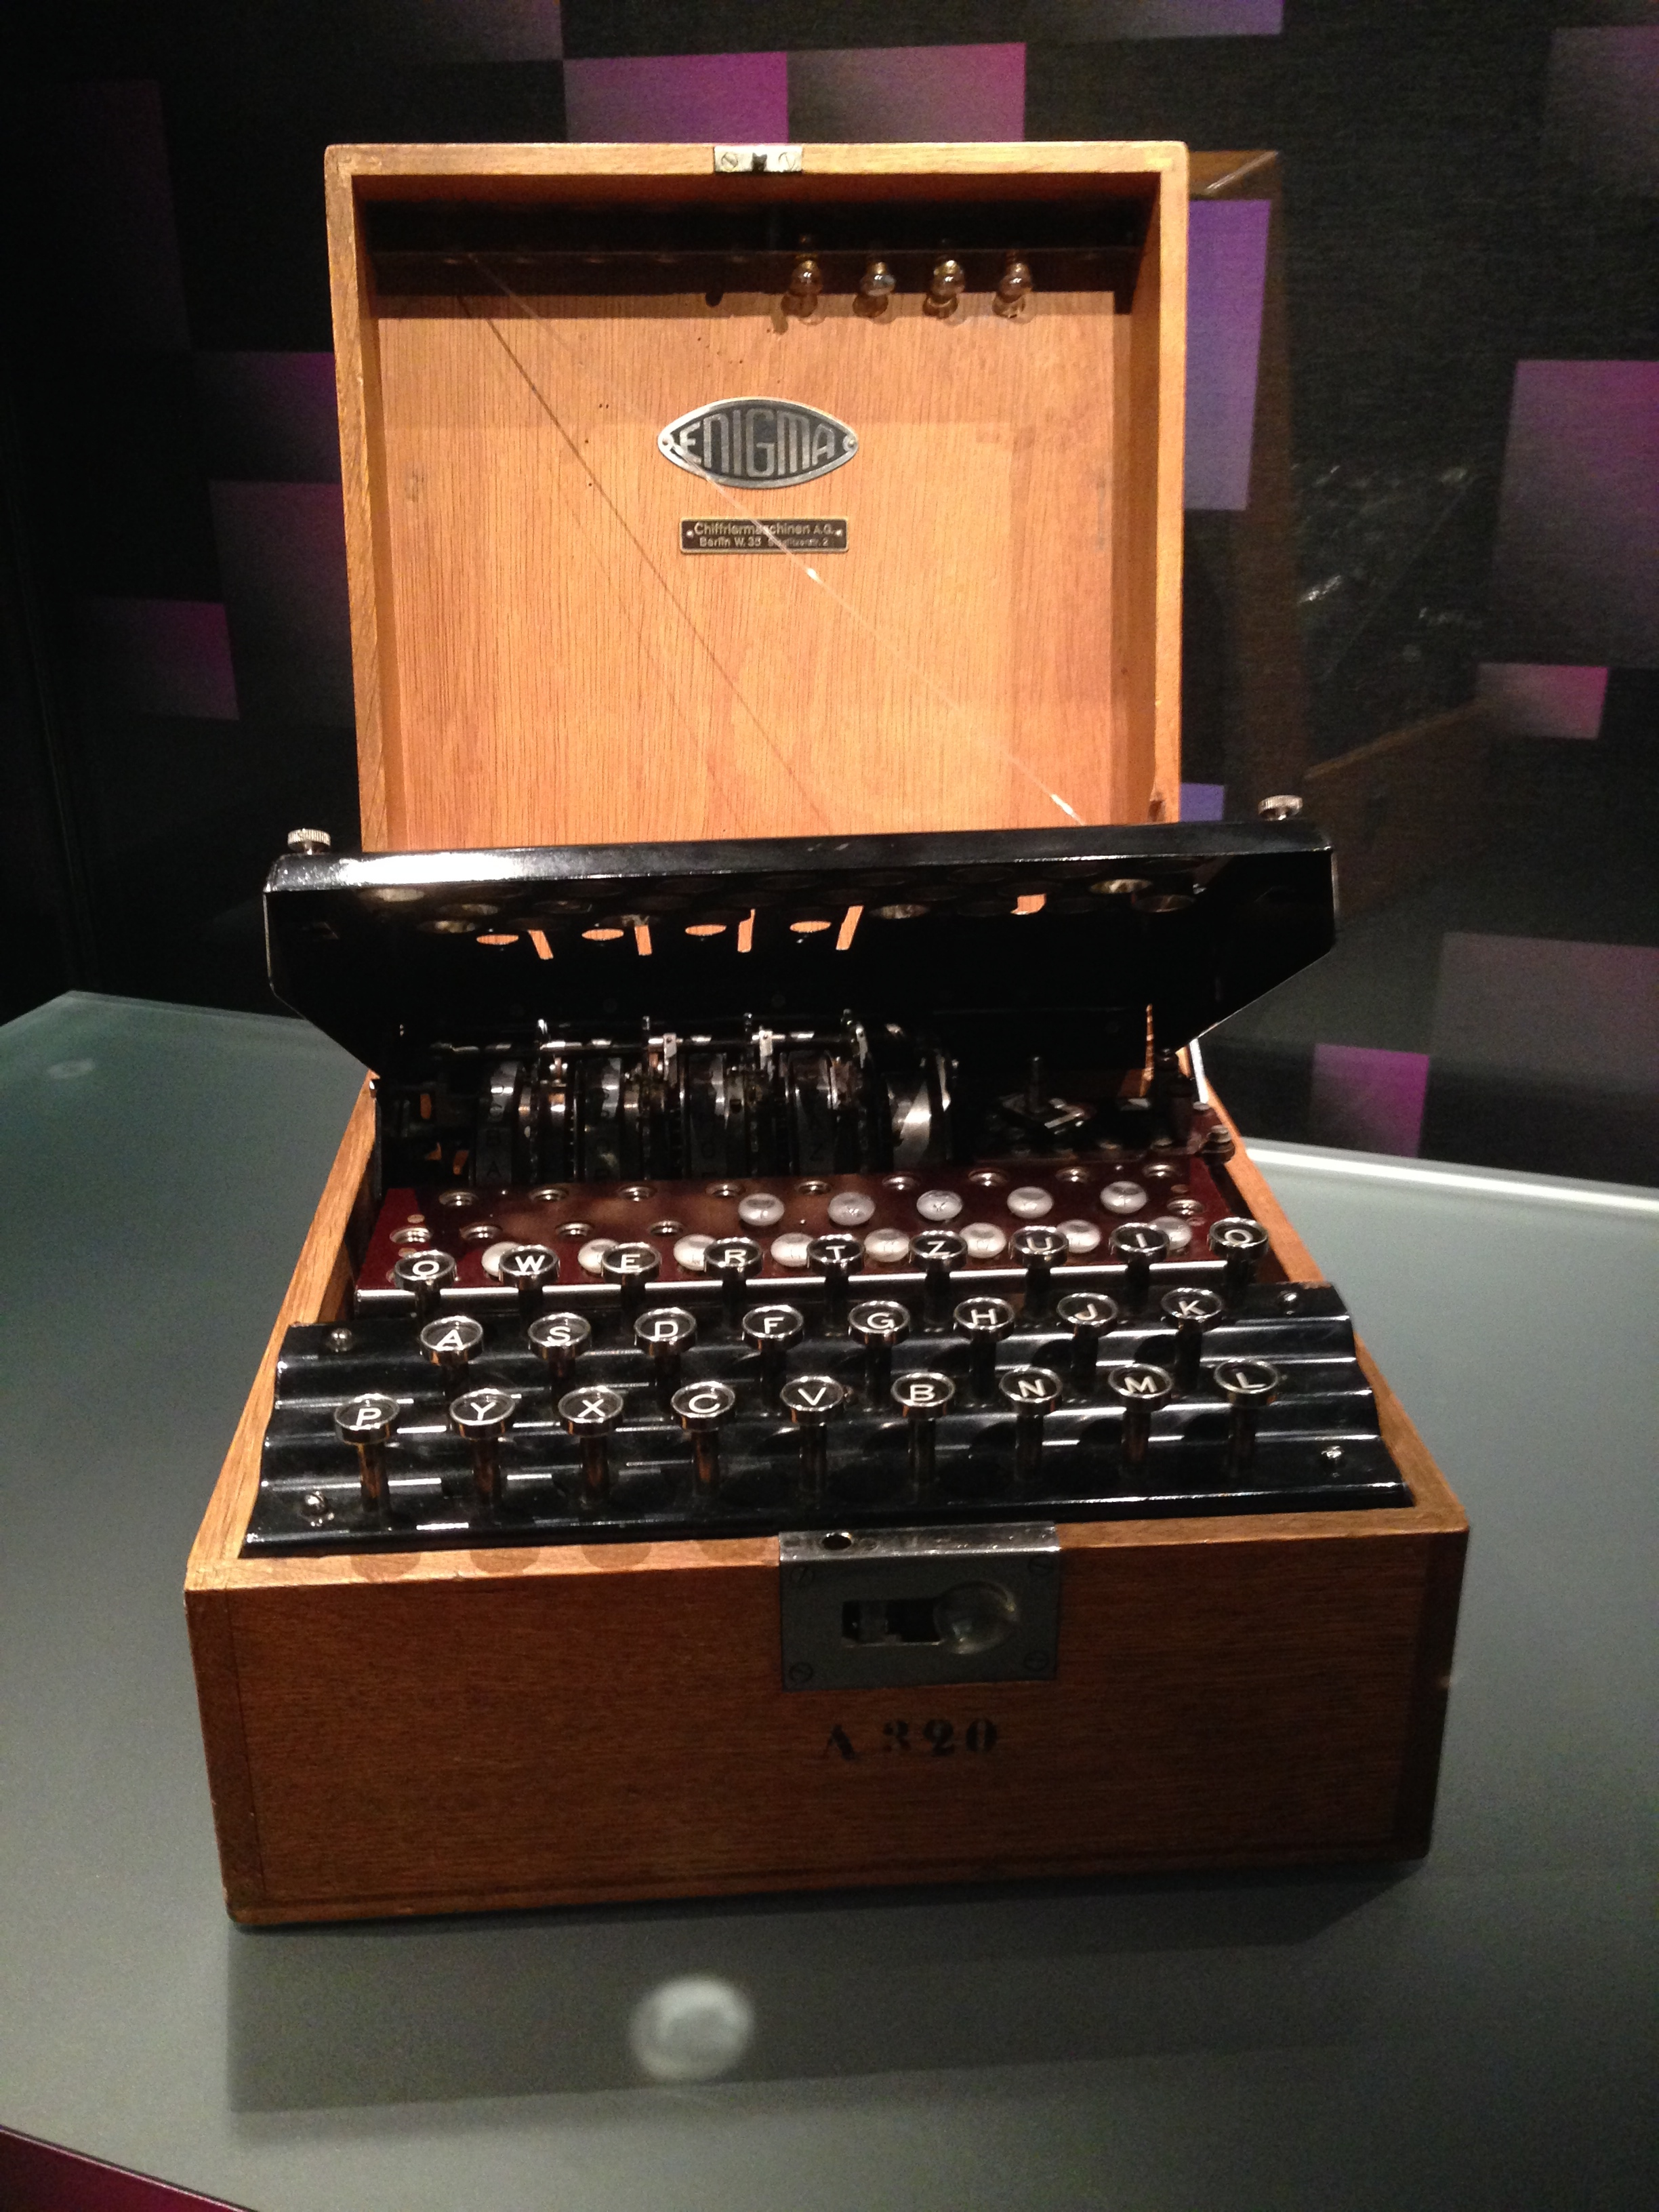 An old enigma machine at Bletchley Park